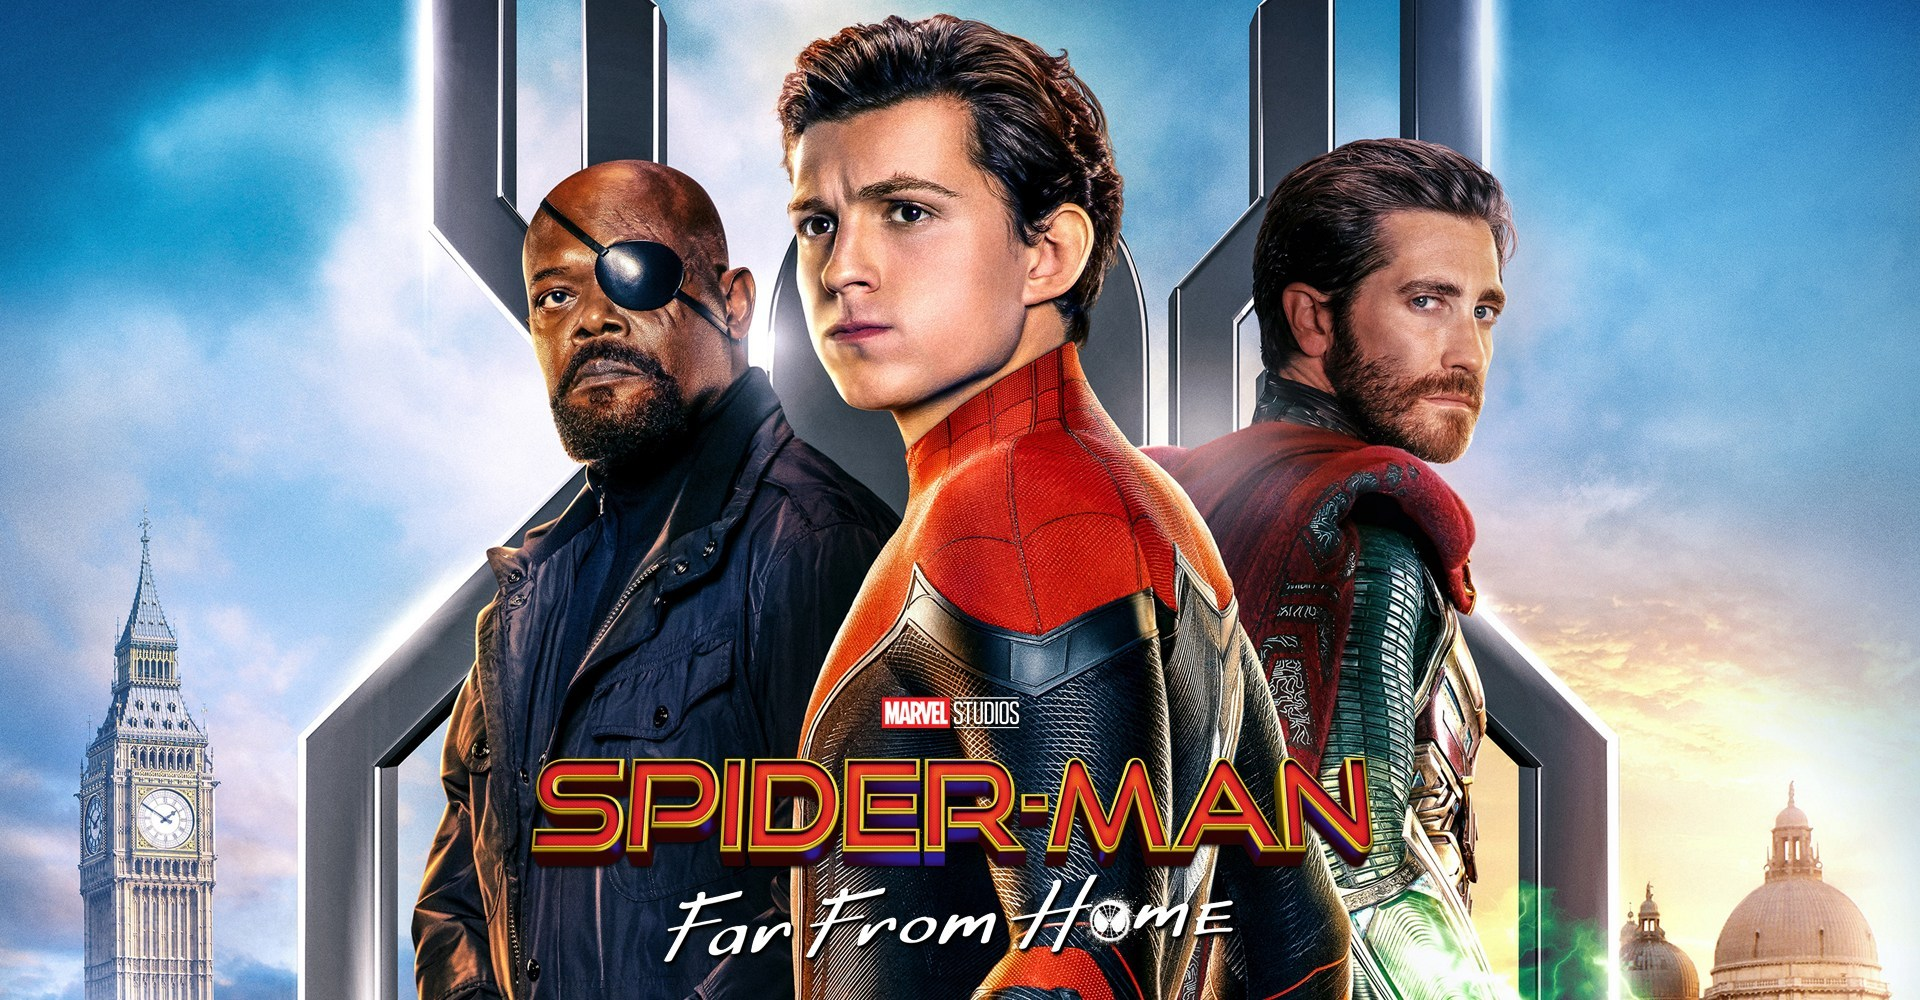 Spiderman, Far from home